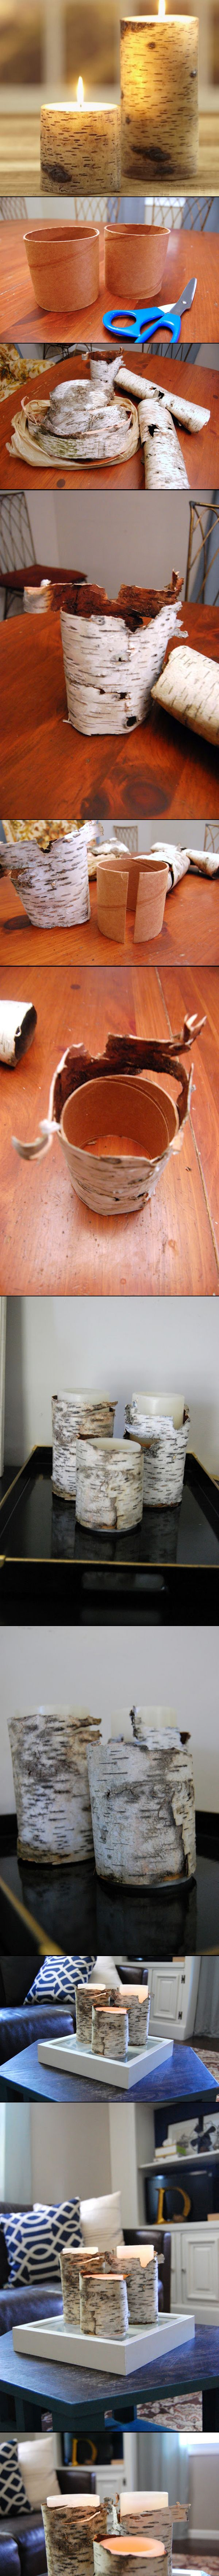 ABSOLUTELY AWESOME!!! Wish I lived near birch trees! Birch Bark Candles | great gifts! Or wrap A straight sided pot or can! Gives INSTANT Outdoor Elegance!